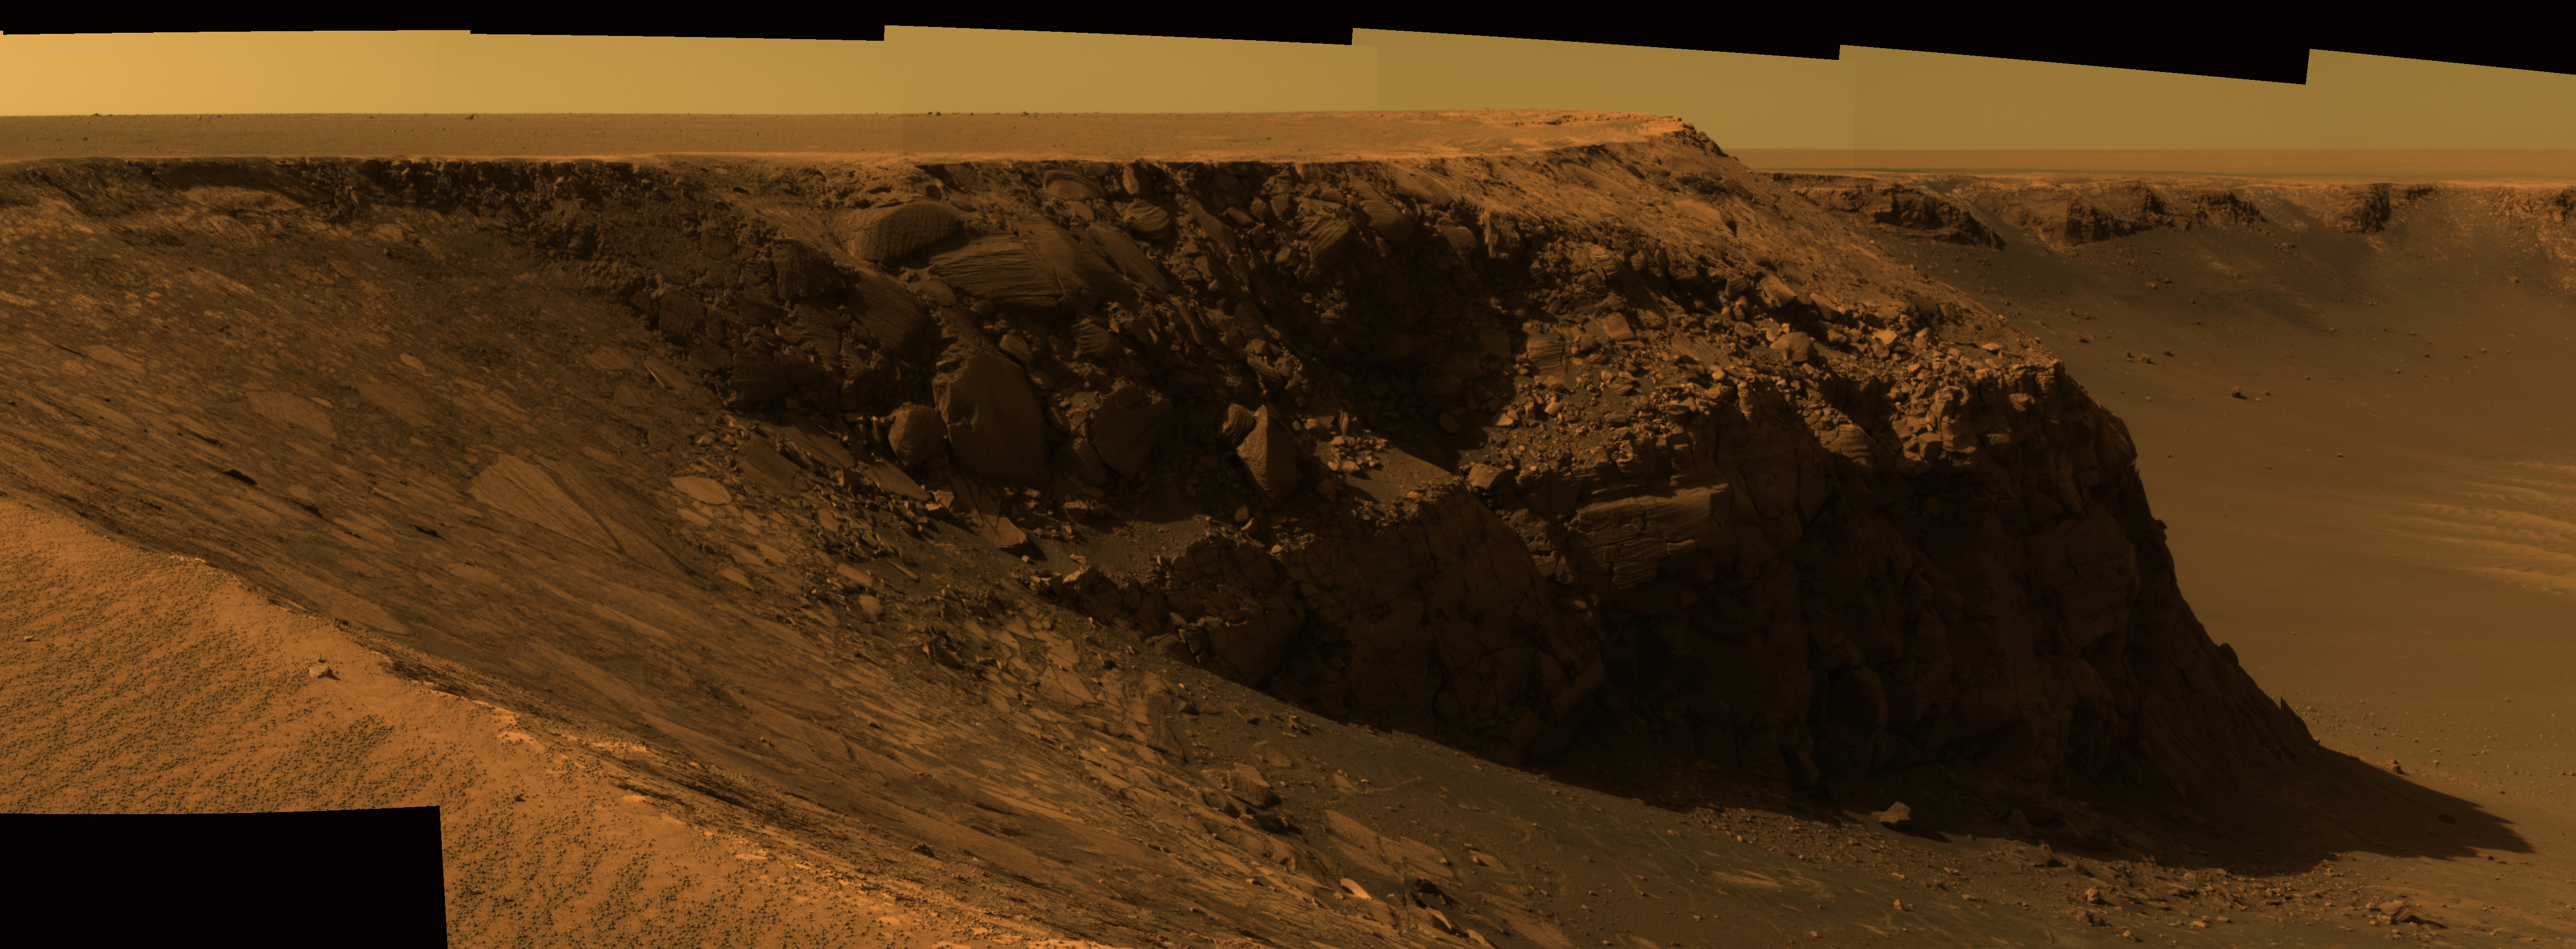 High Resolution Mars Surface - Pics about space